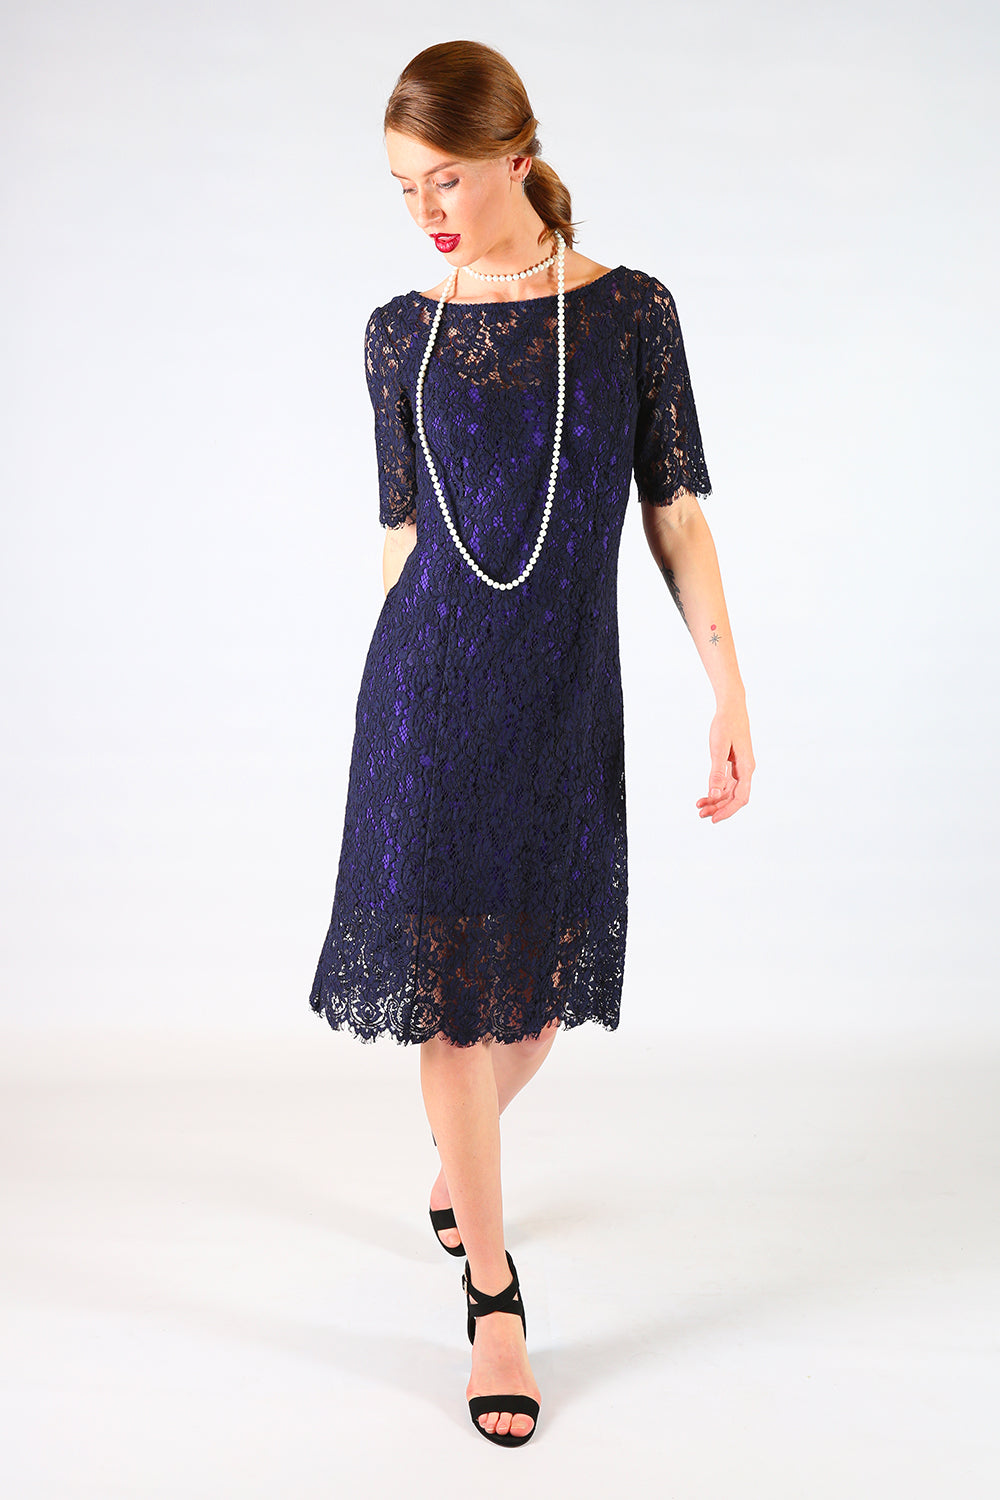 Aleena Tina Lace Dress